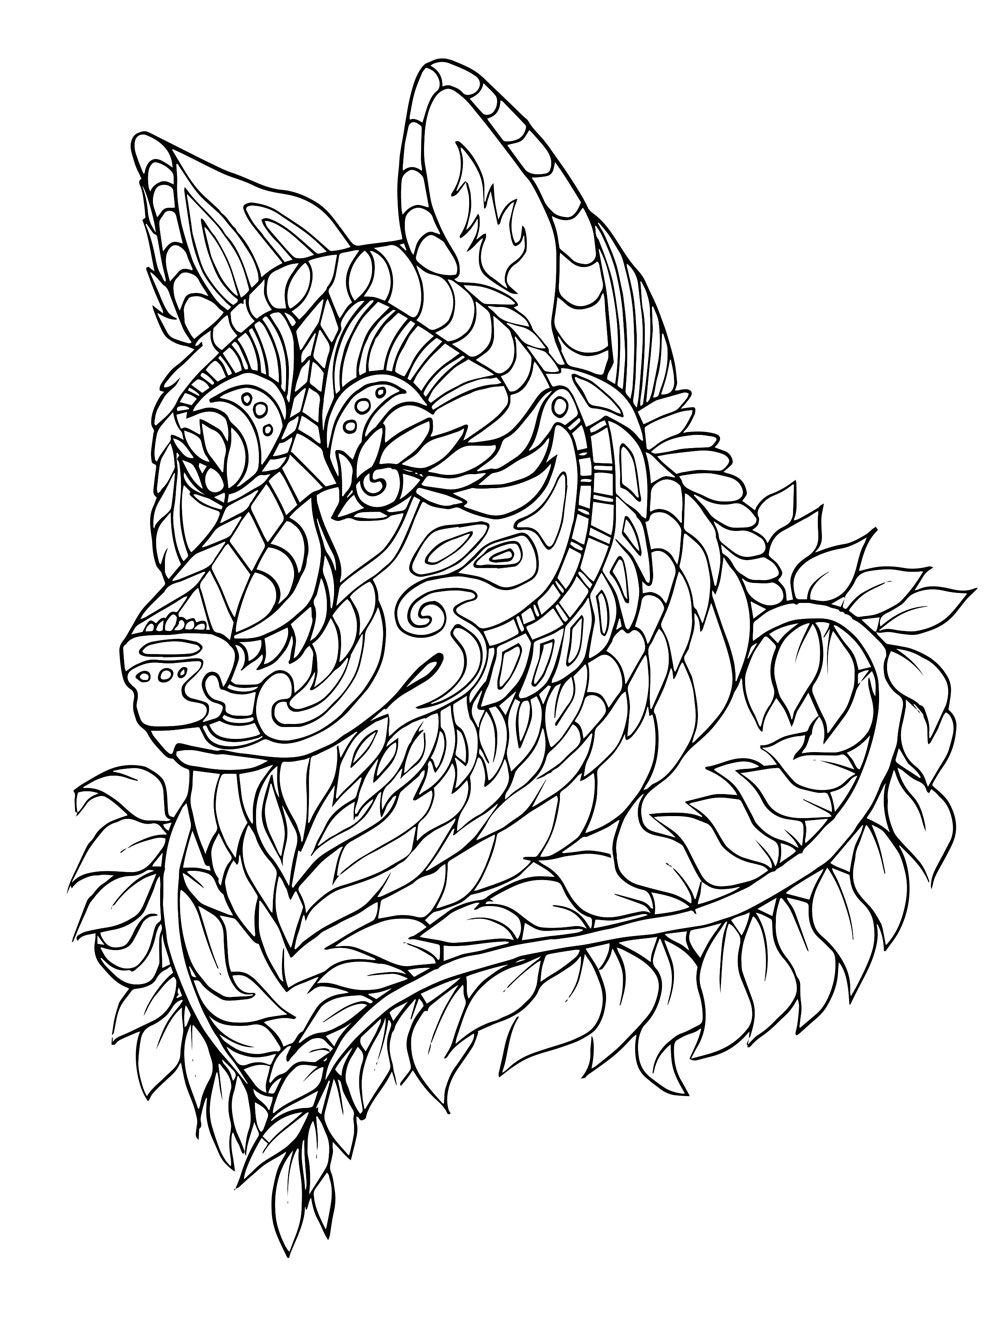 Coloring Pages For Adults Wolf : coloring, pages, adults, Coloring, Pages, Cinebrique